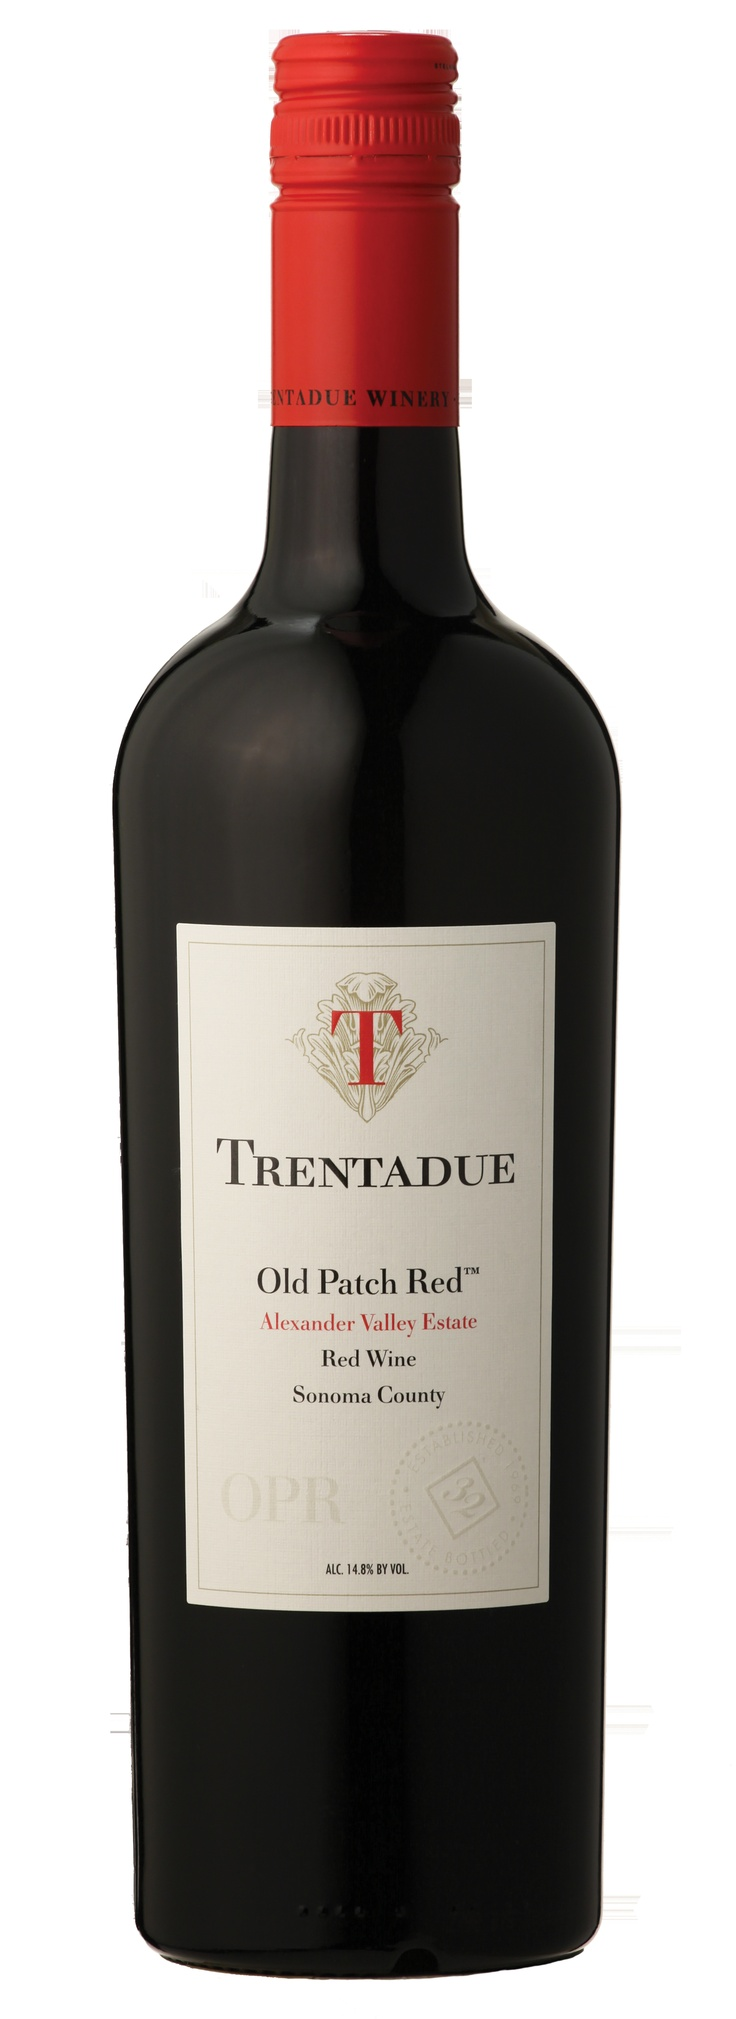 Had this unbelievably delicious wine at Sono the other night... Trentadue Old Patch Red